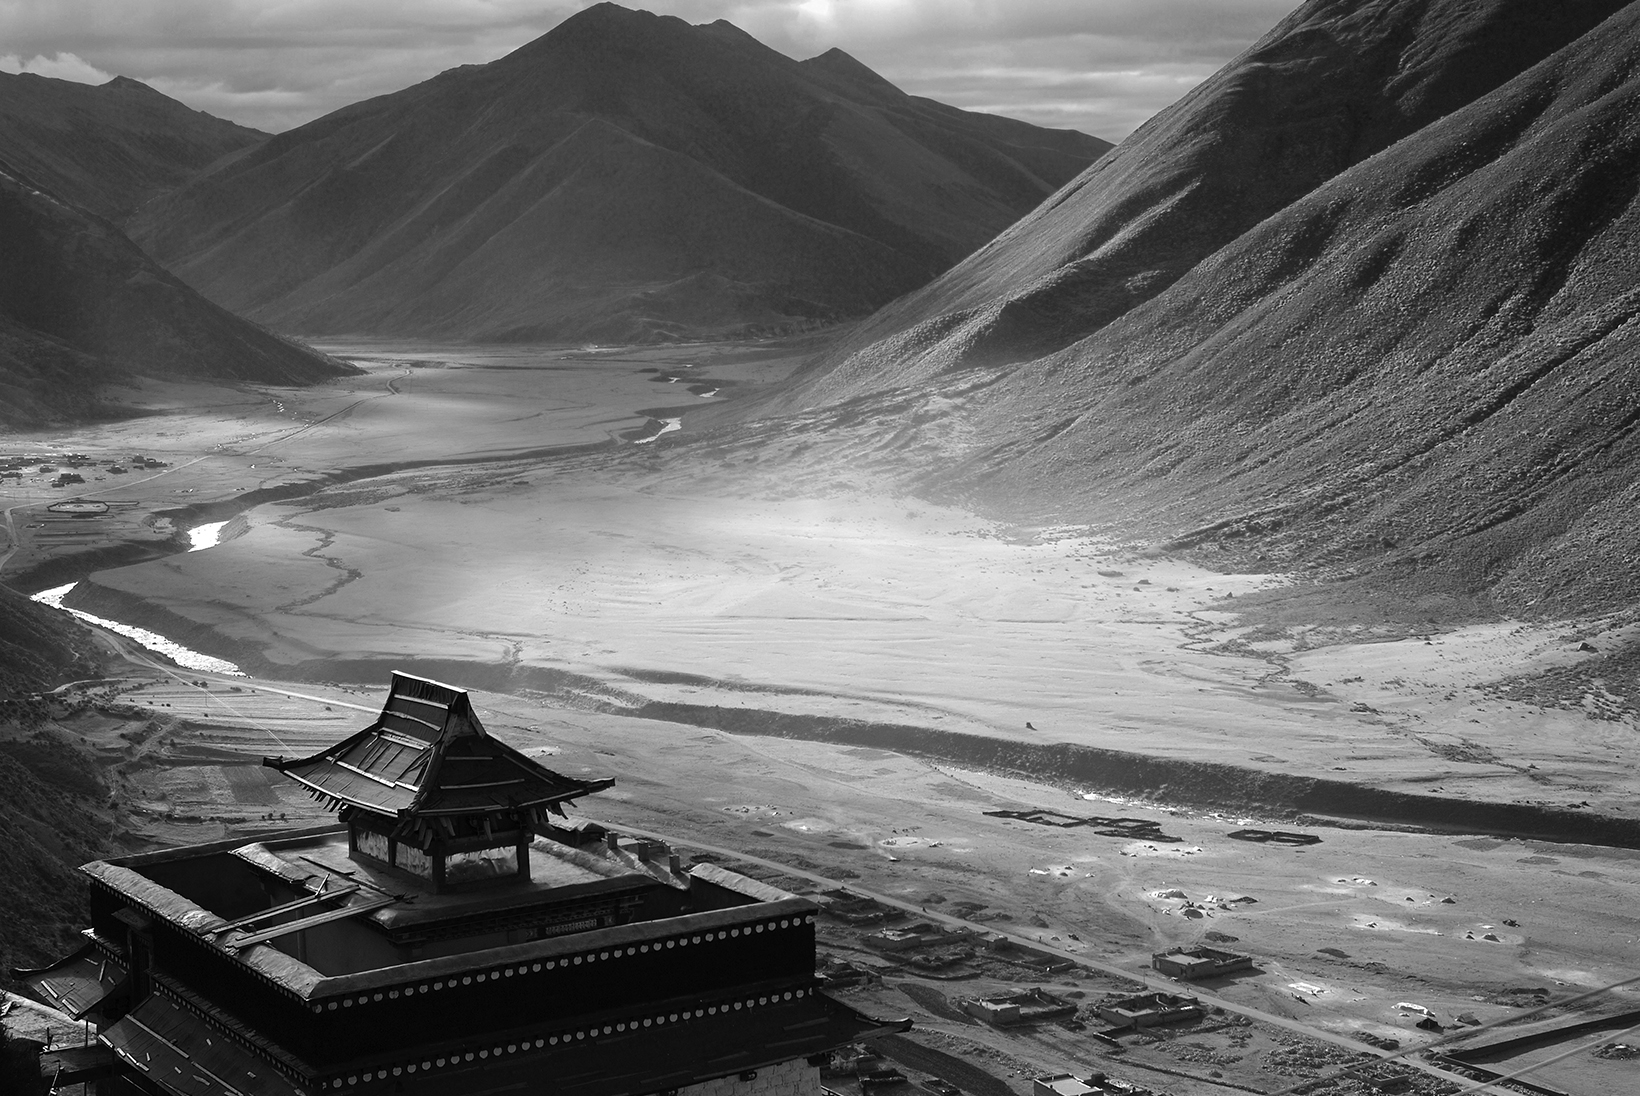 A landscape shot of a valley. Mountains are off in the distance. A river cuts through the middle. In the foreground, along the left corner is a Buddhist temple.